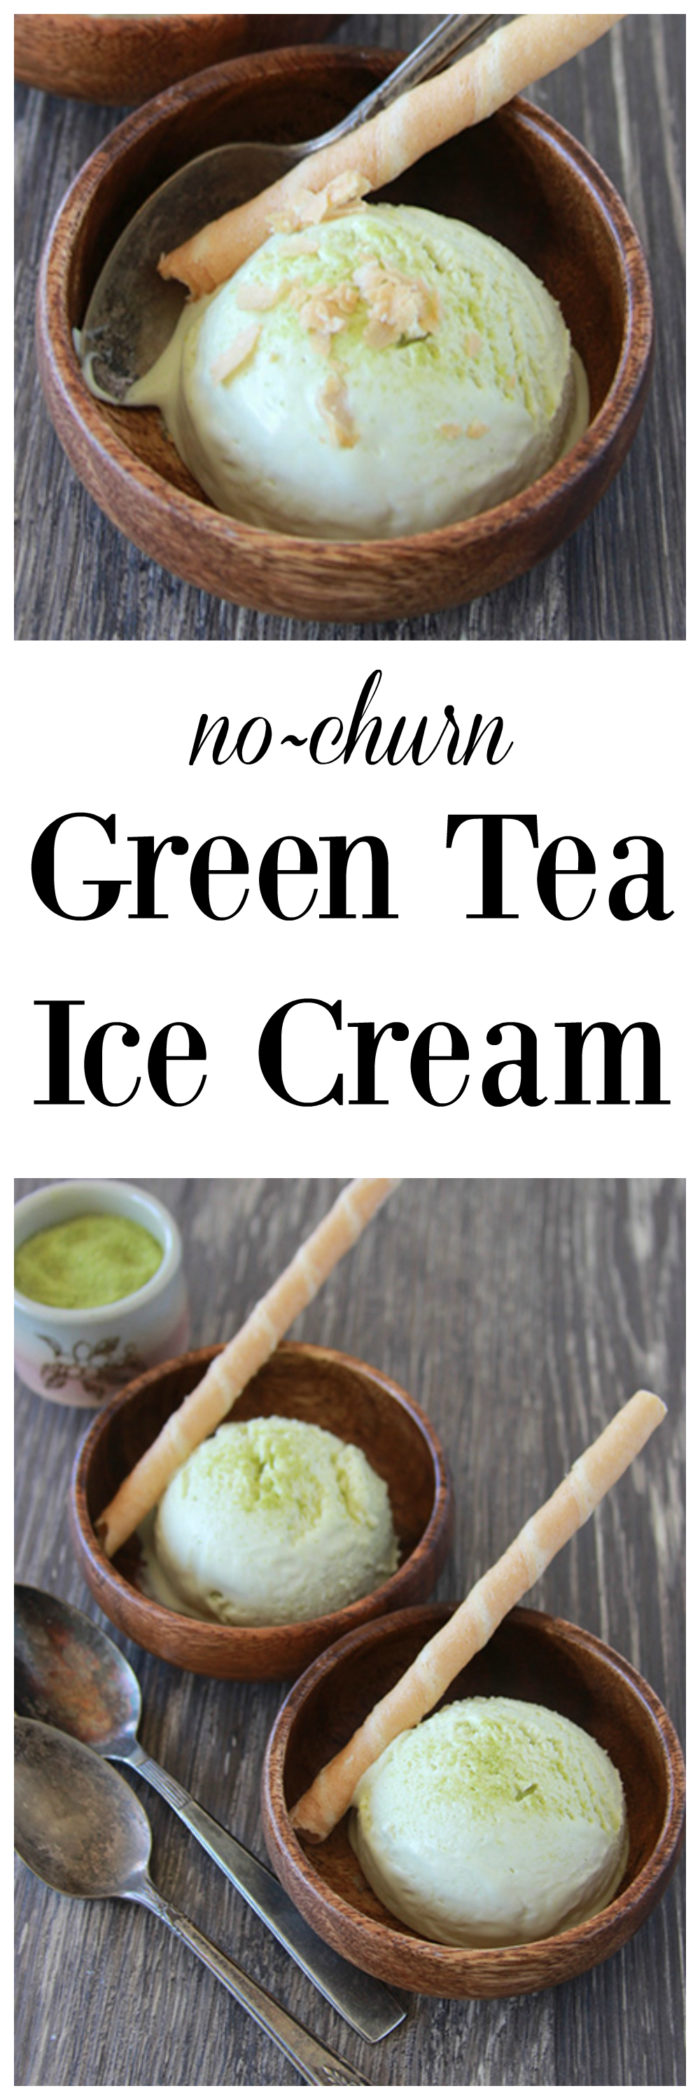 Japanese Green Tea Ice Cream on www.cookingwithruthie.com is a smooth and creamy no-churn ice cream with mild green tea flavor!